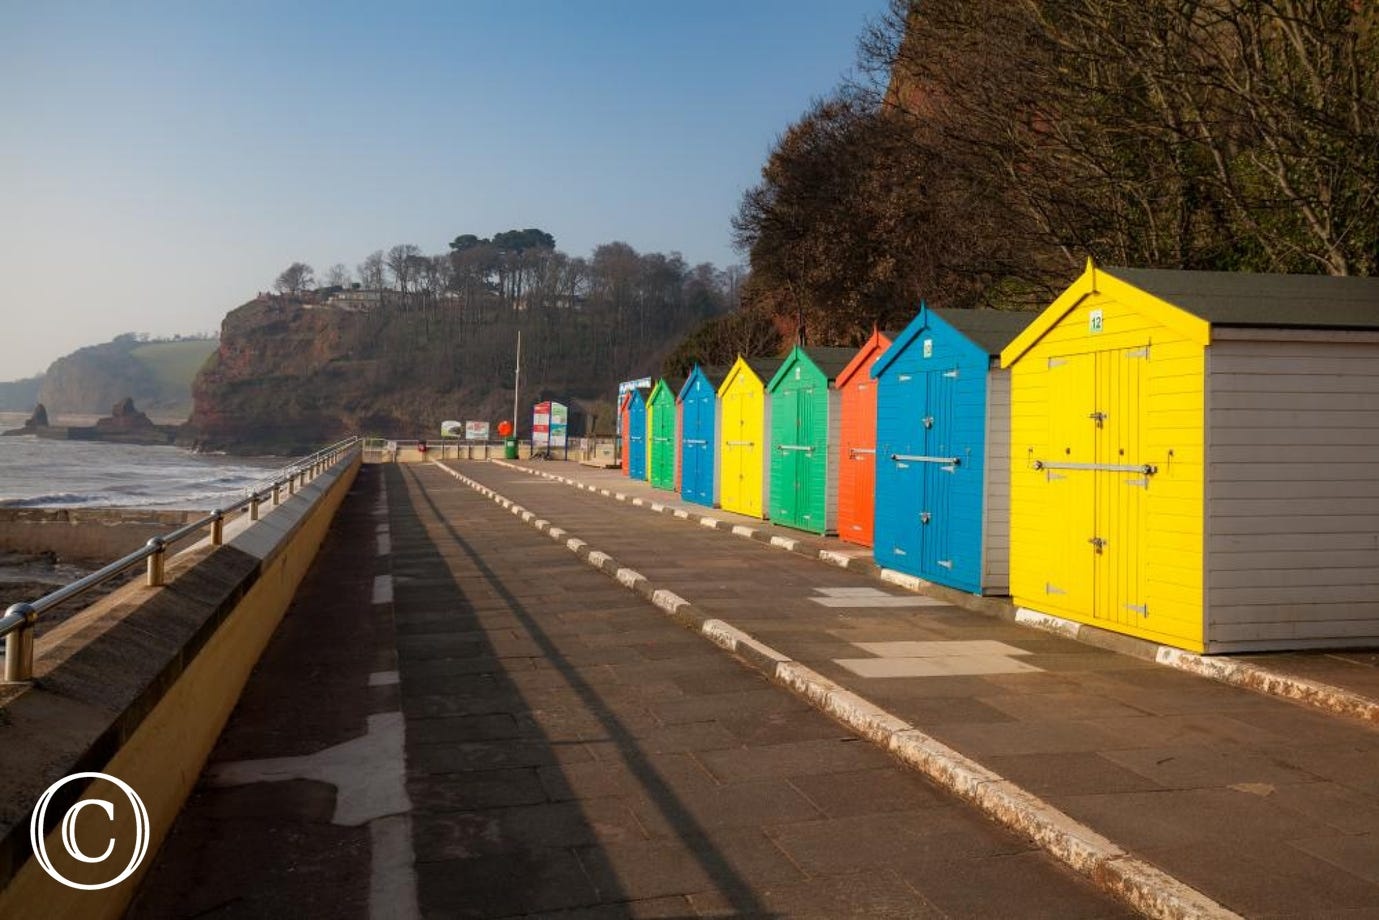 Self-Catering Holiday Apartments within walking distance of Dawlish Beach